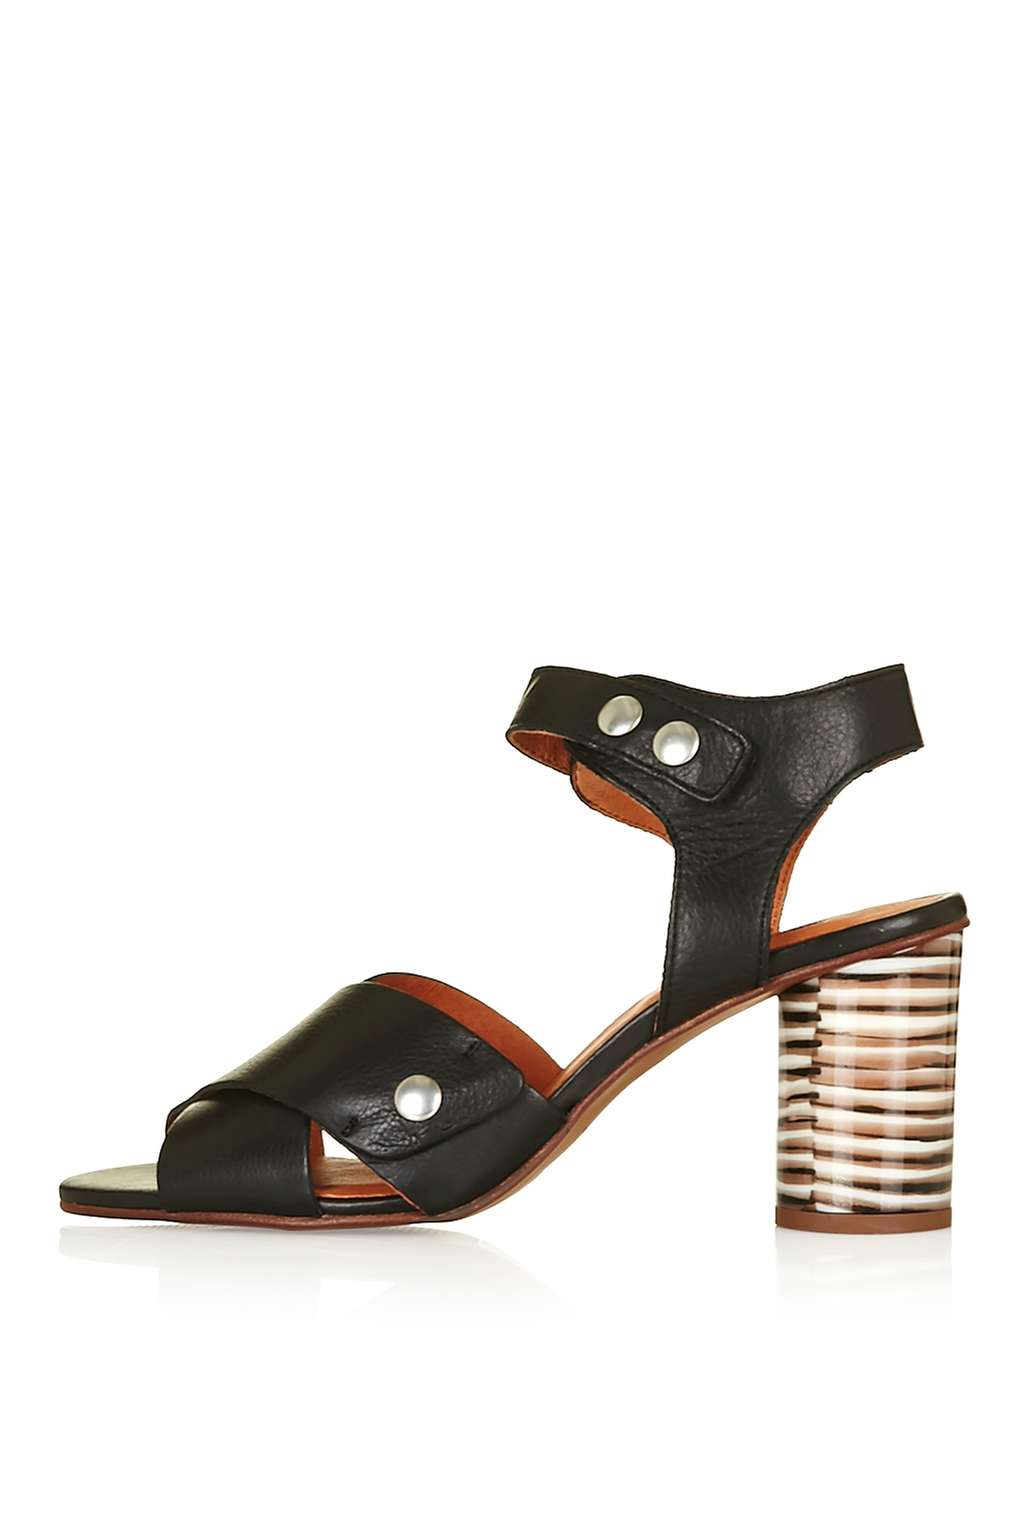 NATURE Cross Strap Sandals  available at Topshop- $125